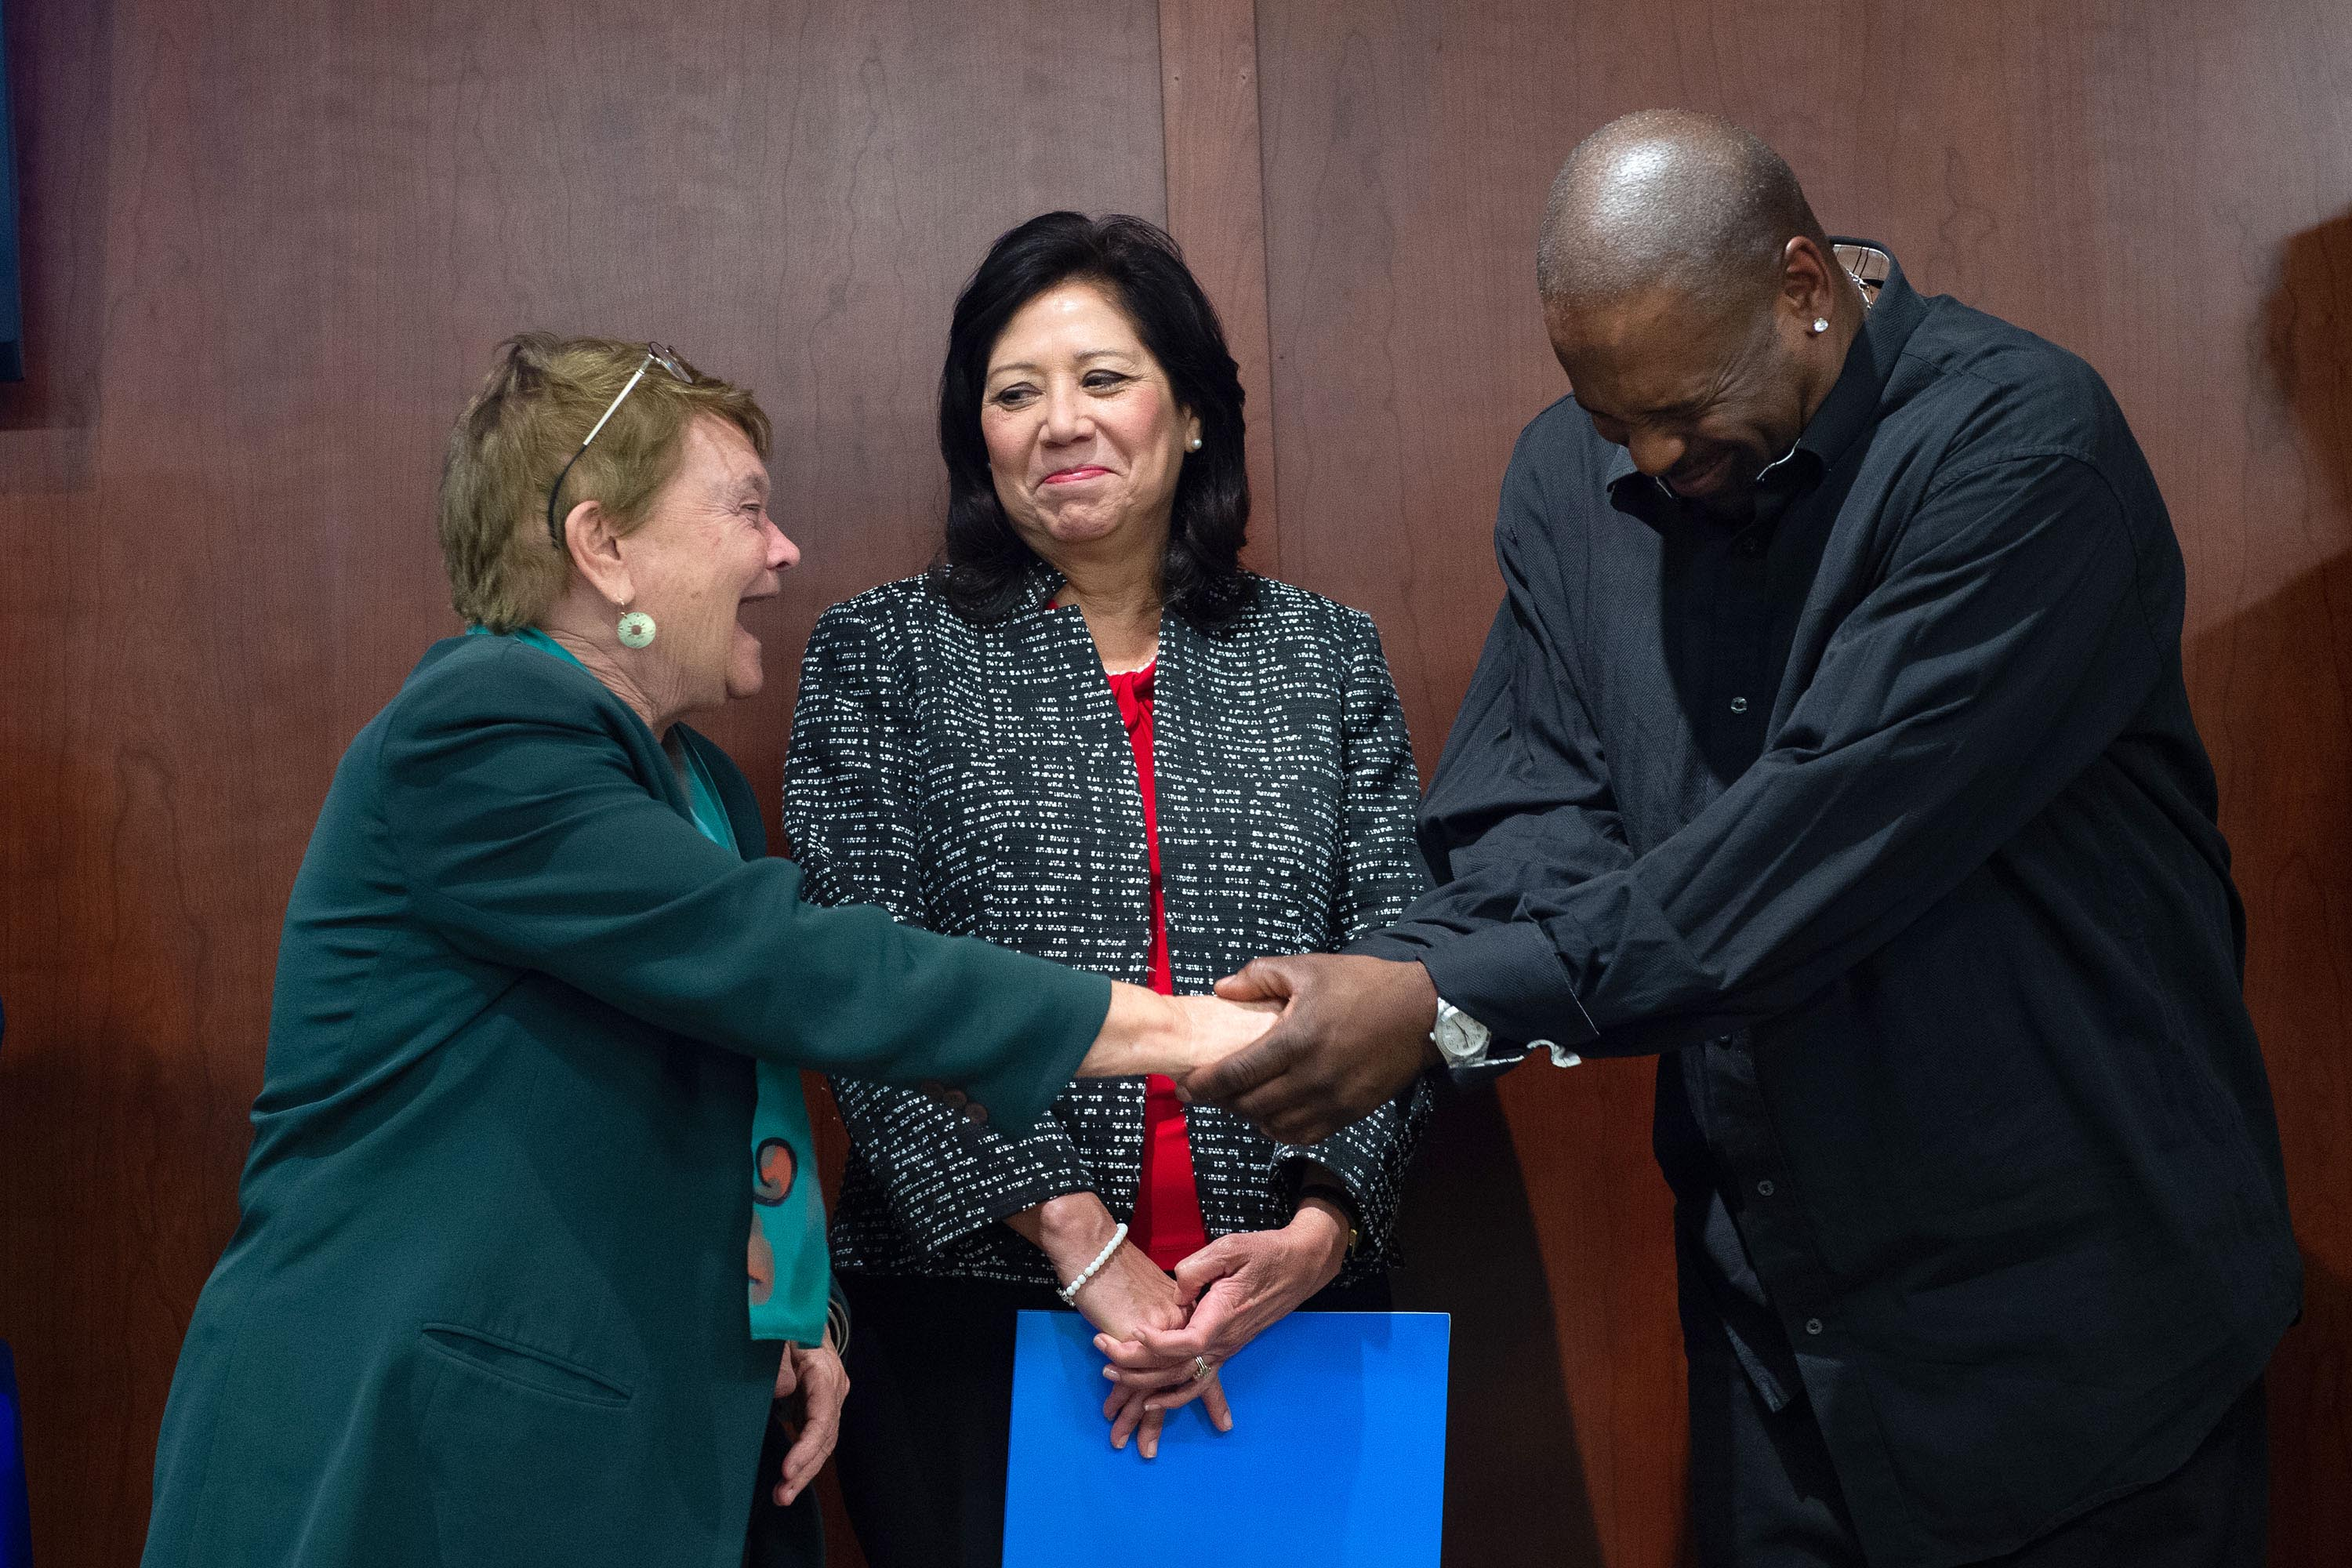 Districts 1 and 3 – Supervisors Sheila Kuehl and Hilda L. Solis<br> <b>April 22, 2019 – Ski Row homeless tour. </b><br> <i>Photo by Bryan Chan / Board of Supervisors</i>